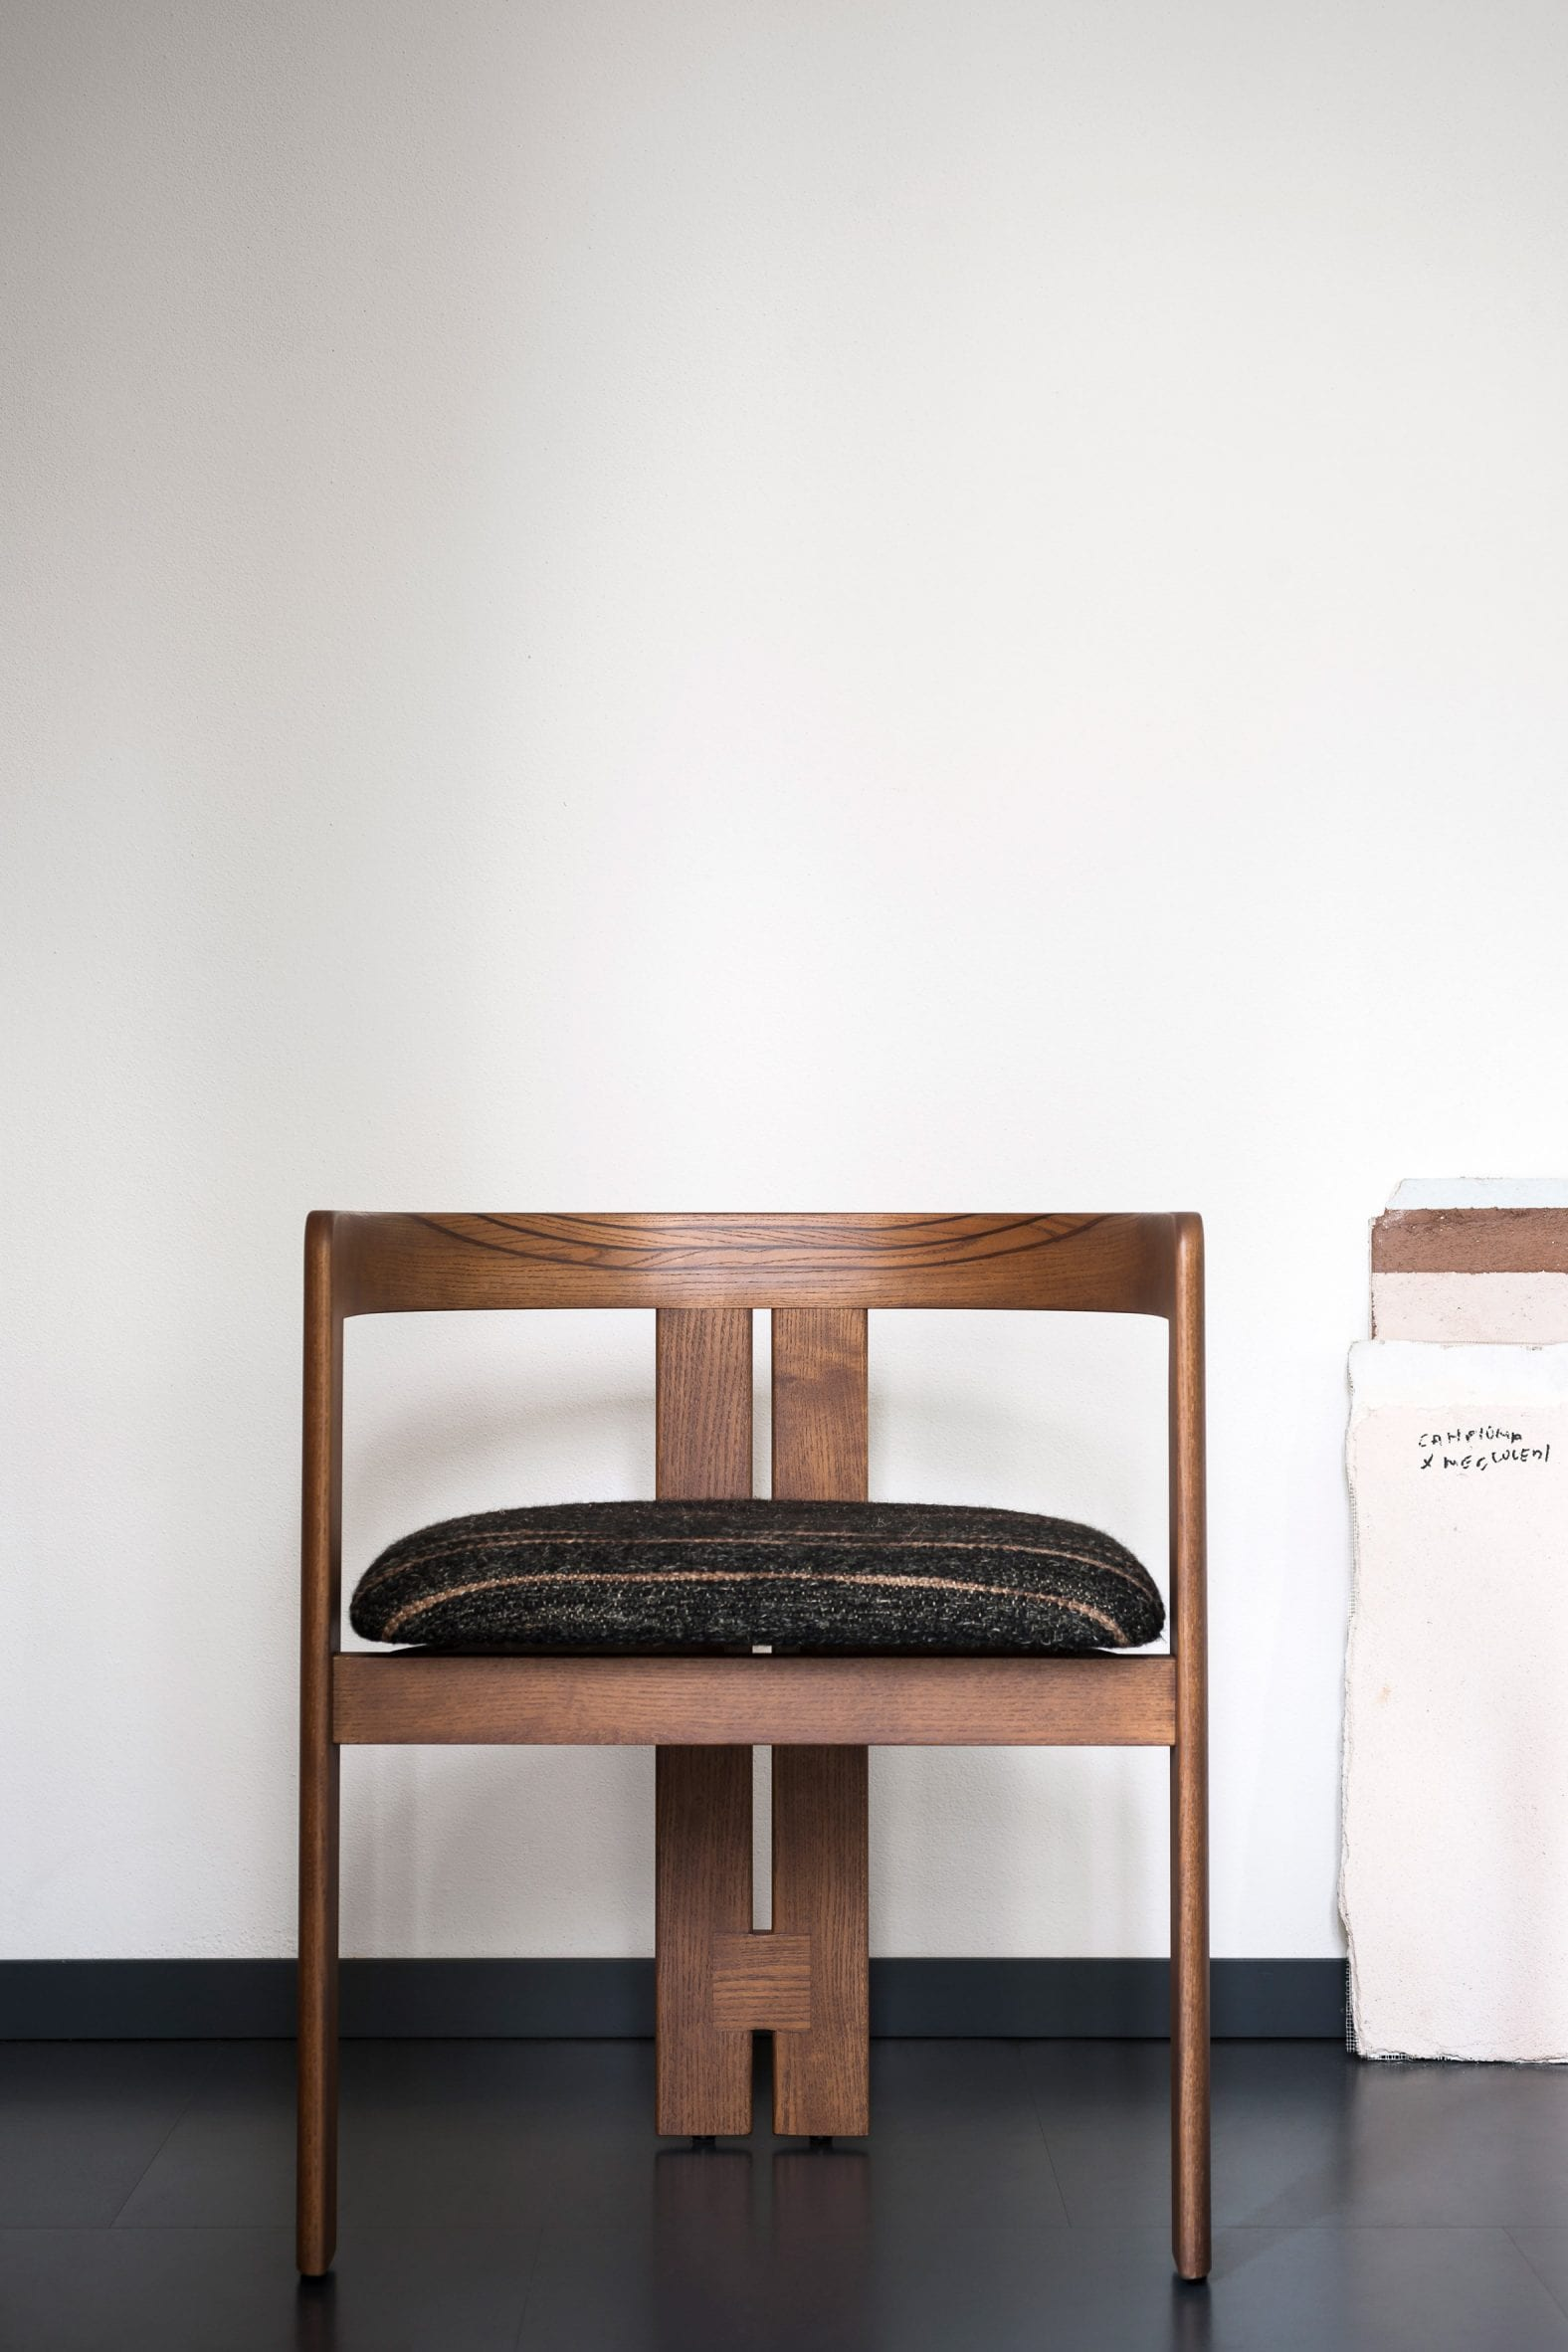 Walnut Pigreco chair by Tobia Scarpa with a black upholstered seat